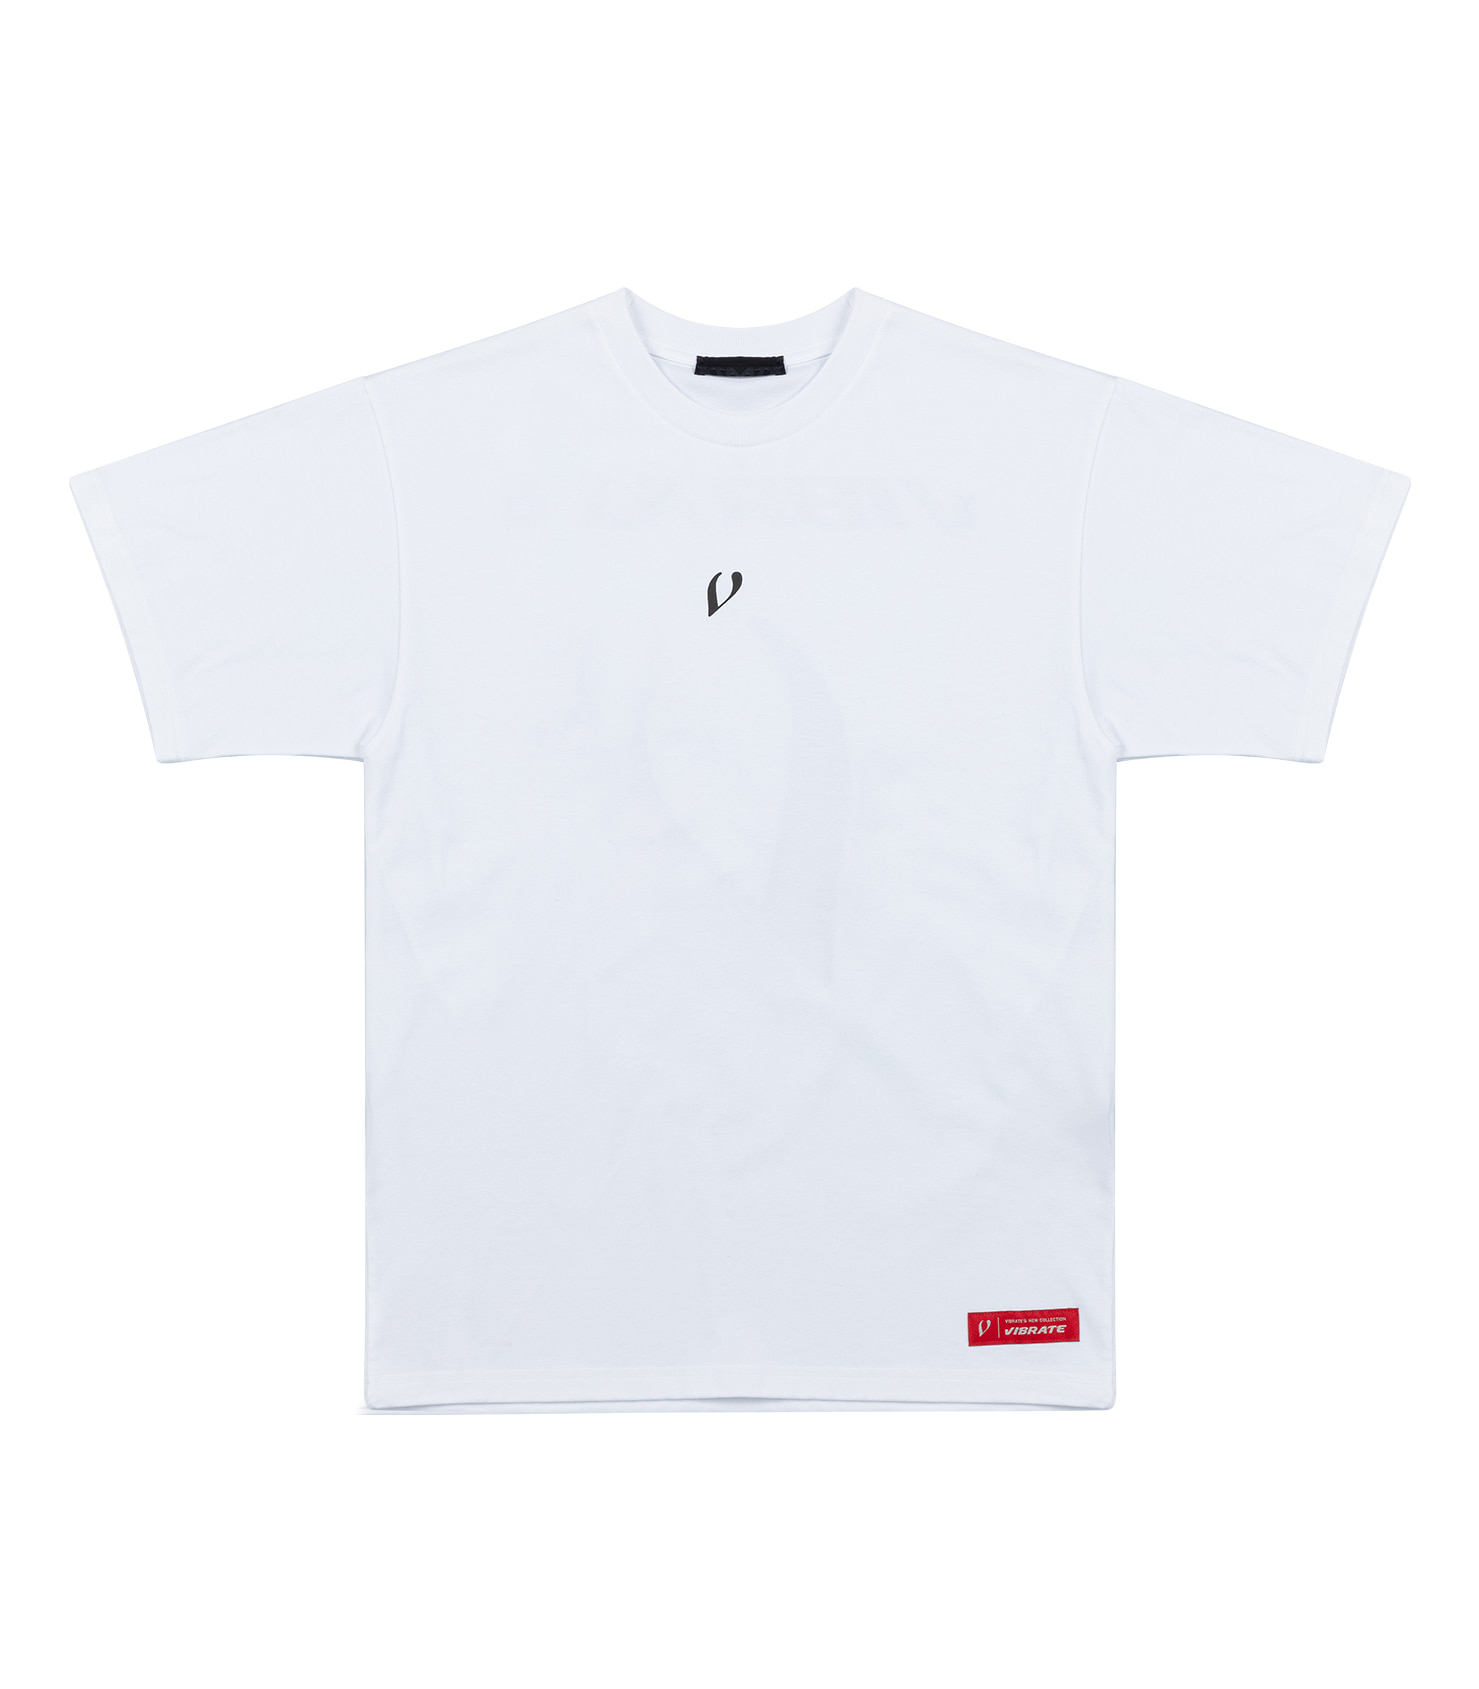 V FLASH M005 T-SHIRT (WHITE)